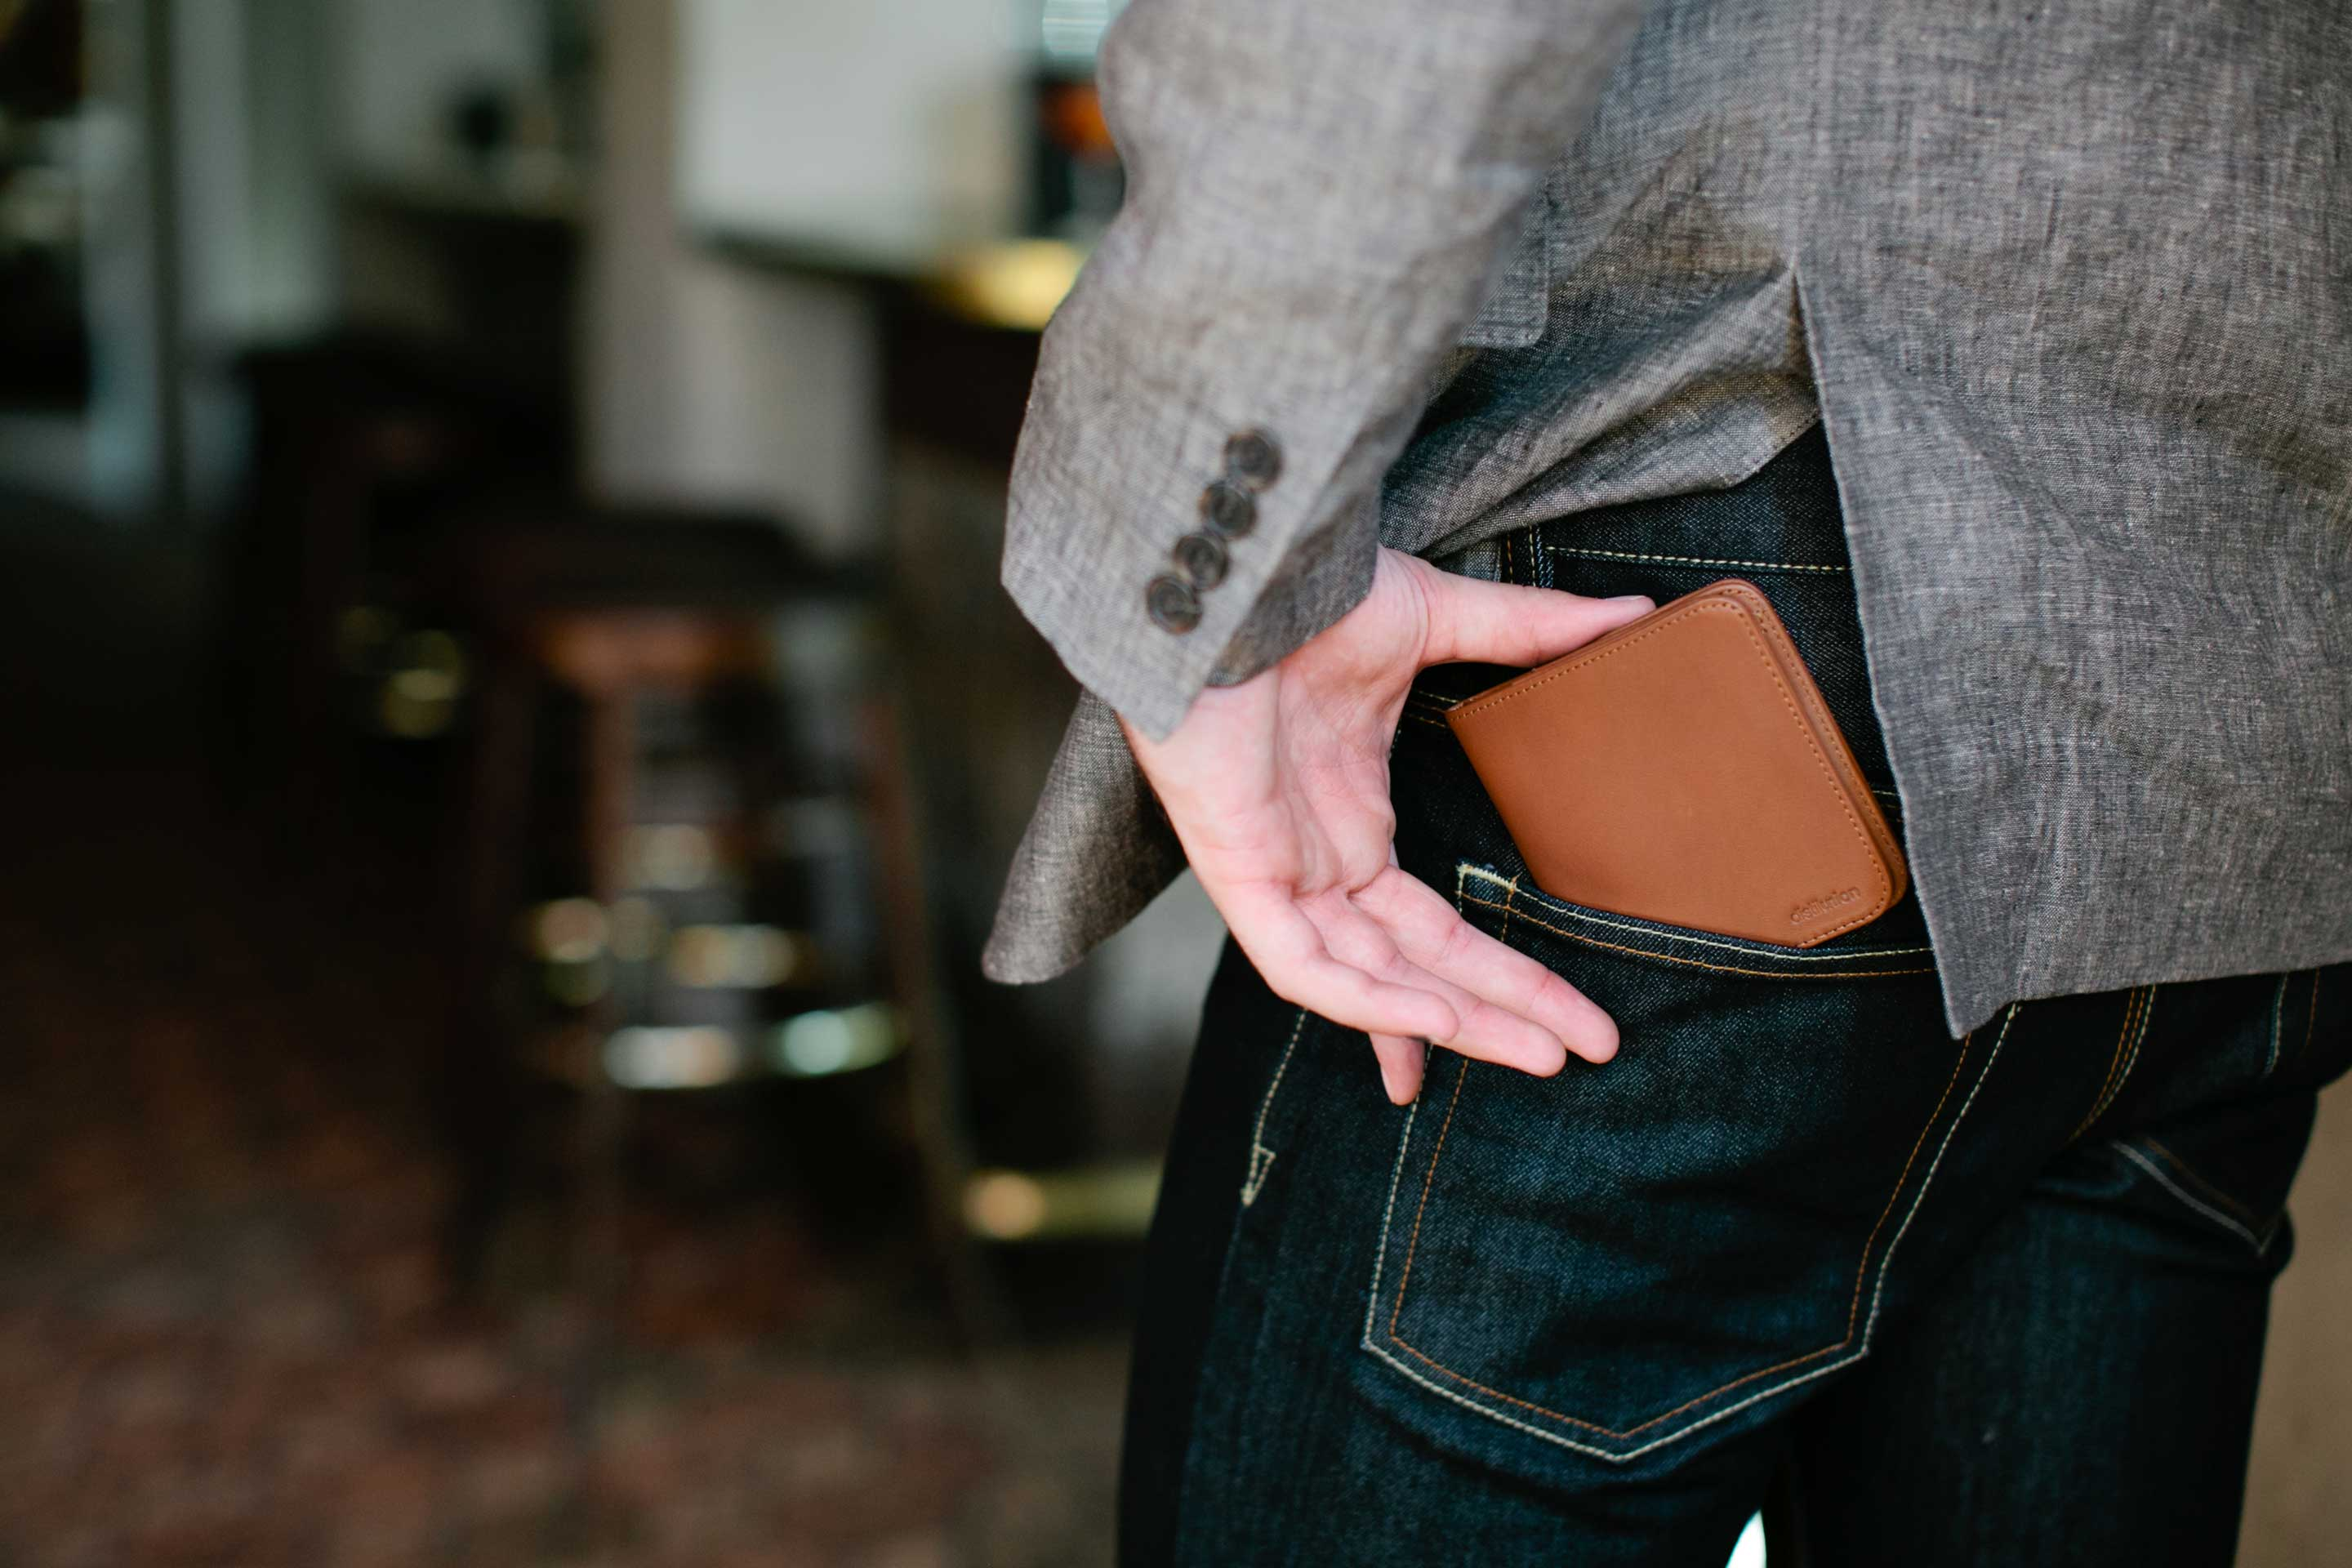 Sure you can put your wallet in your back pocket — just take it out when you sit down!